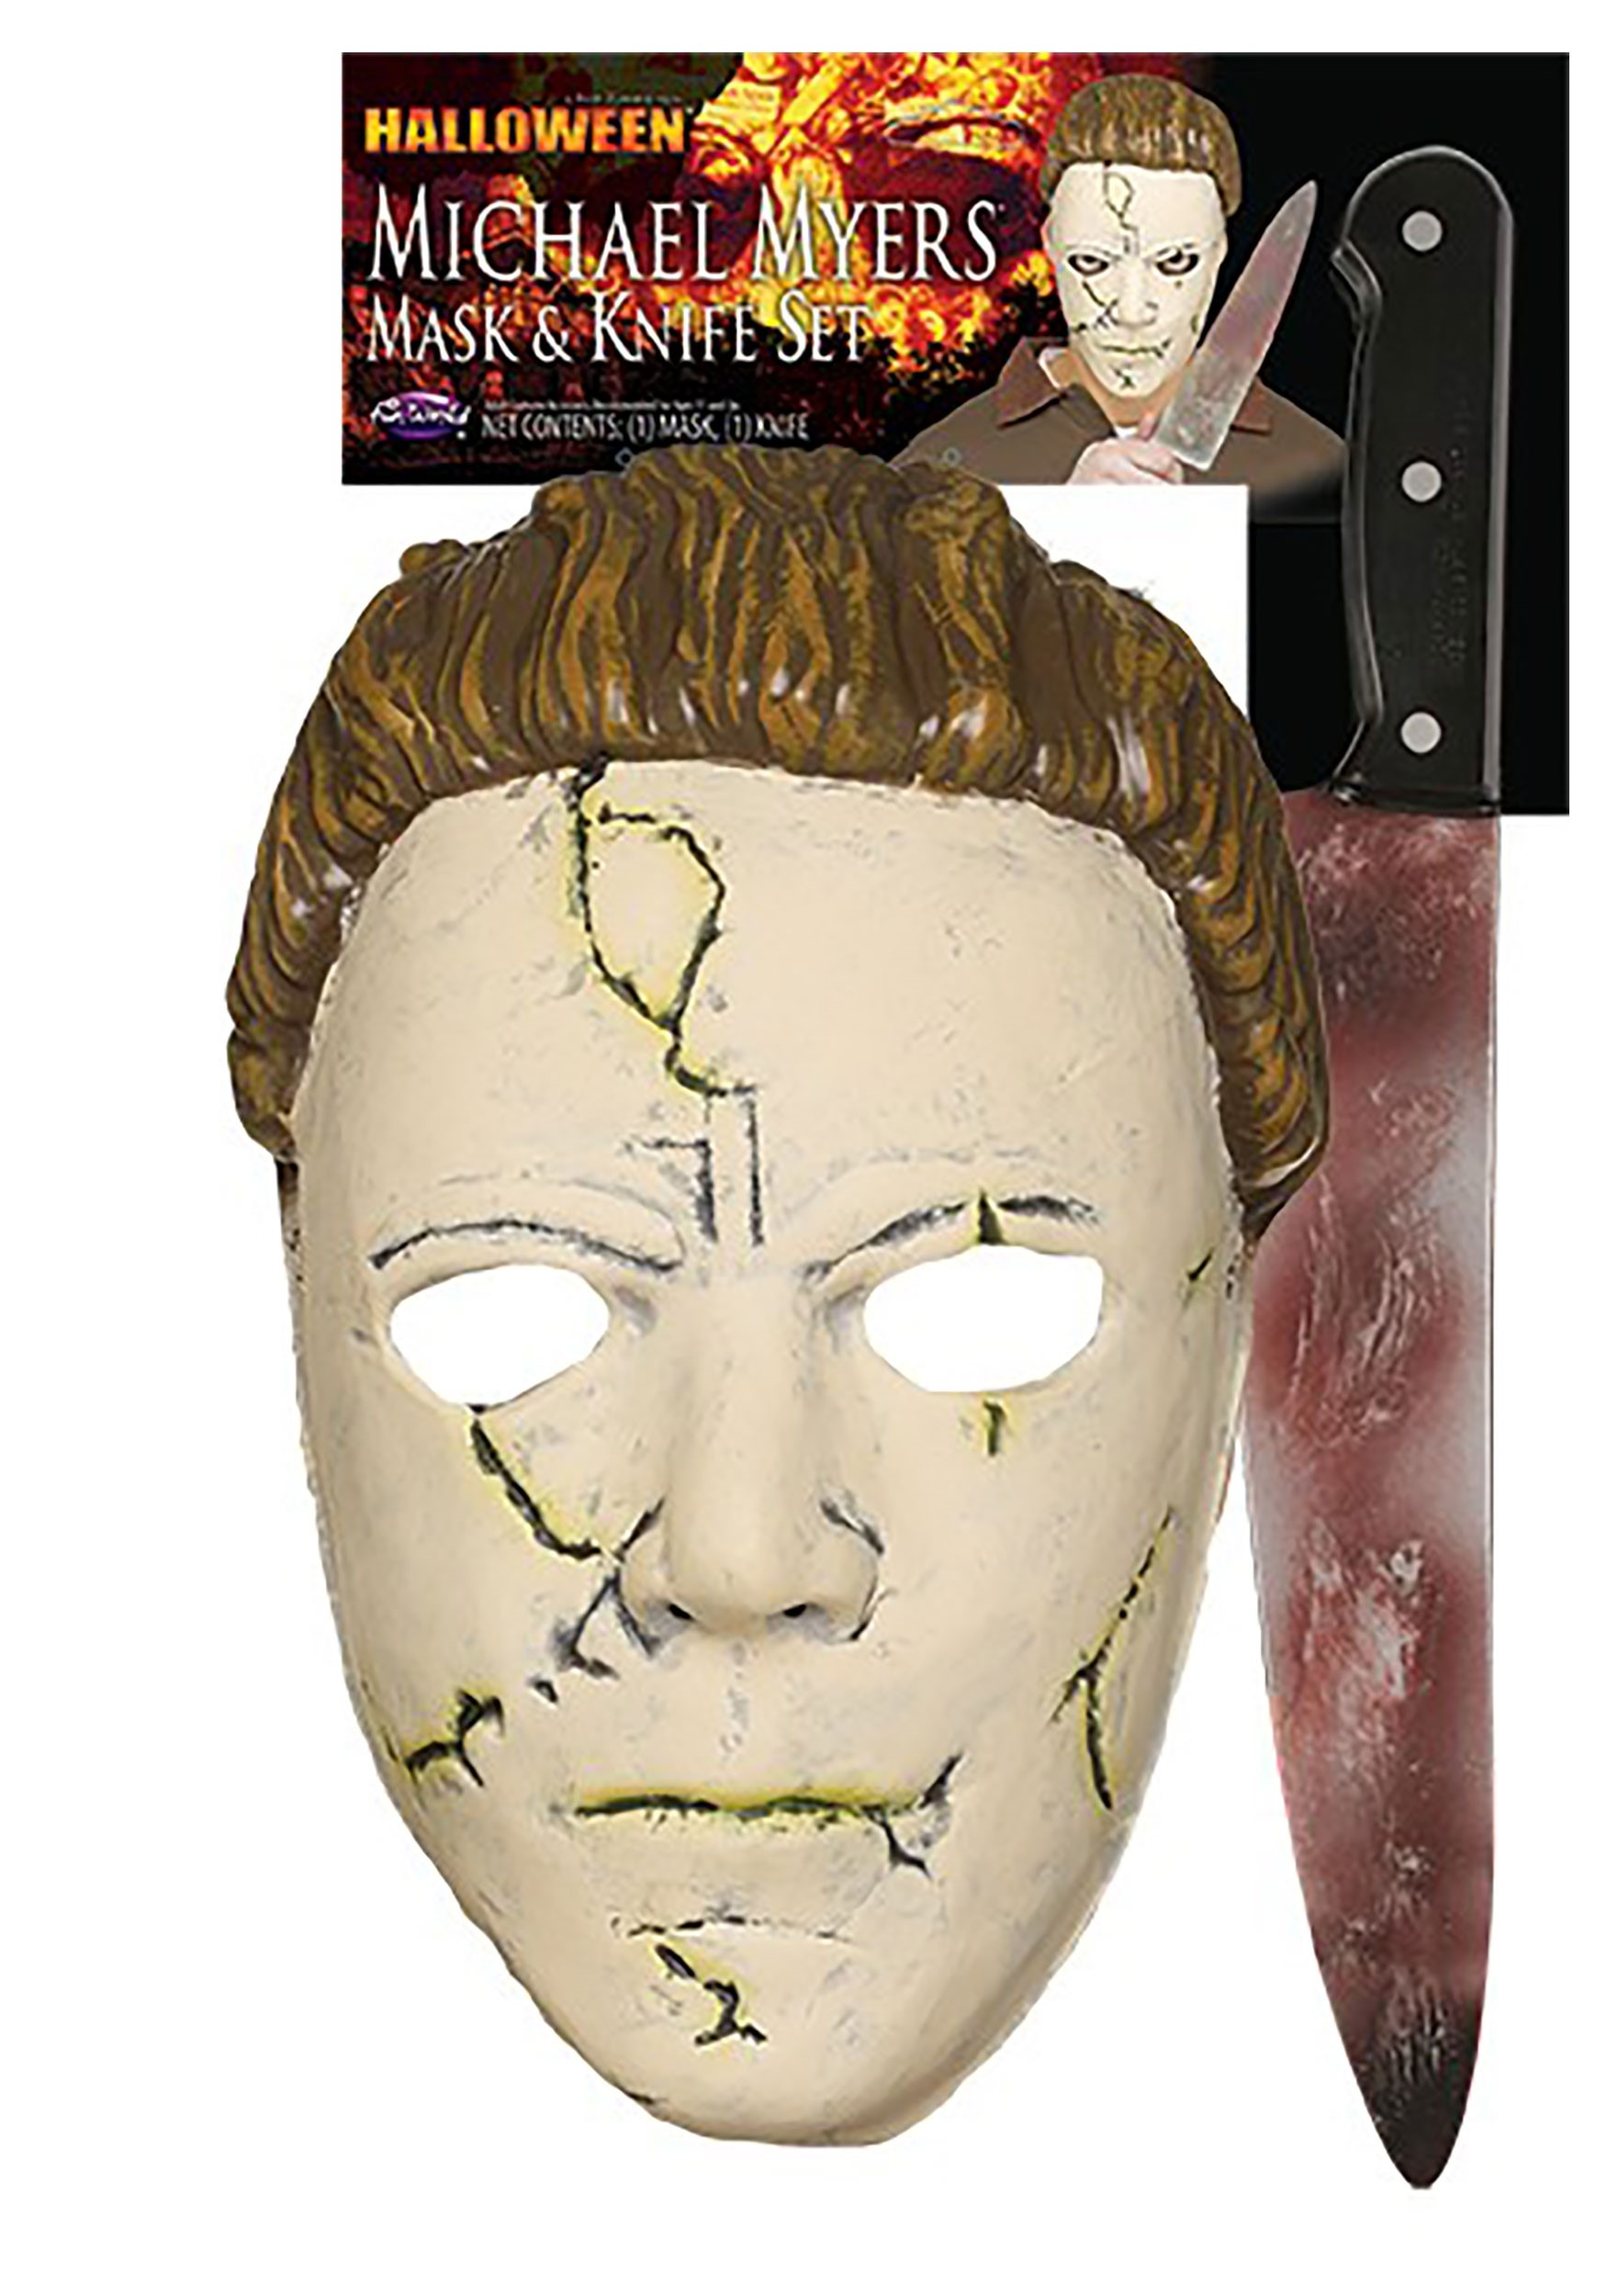 Halloween Rob Zombie Michael Myers Mask Vs Halloween 2020 Michael Myers Mask Michael Myers Halloween (Rob Zombie) Resilient Mask and Knife